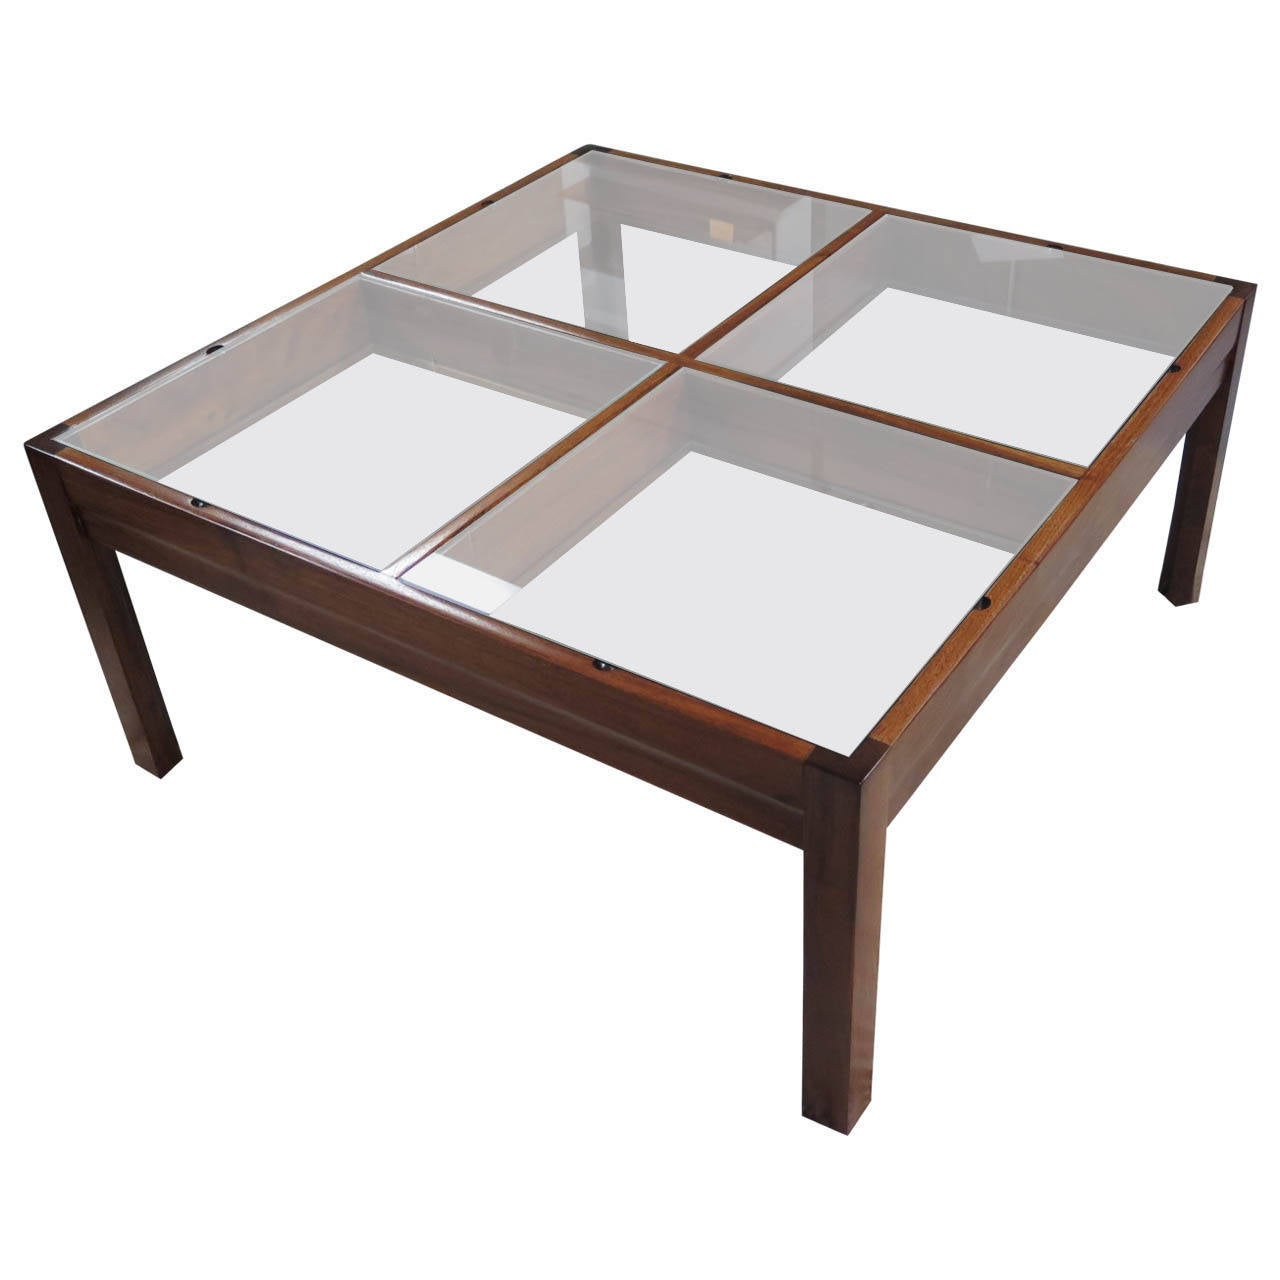 unusual display coffee table 1960 at 1stdibs. Black Bedroom Furniture Sets. Home Design Ideas